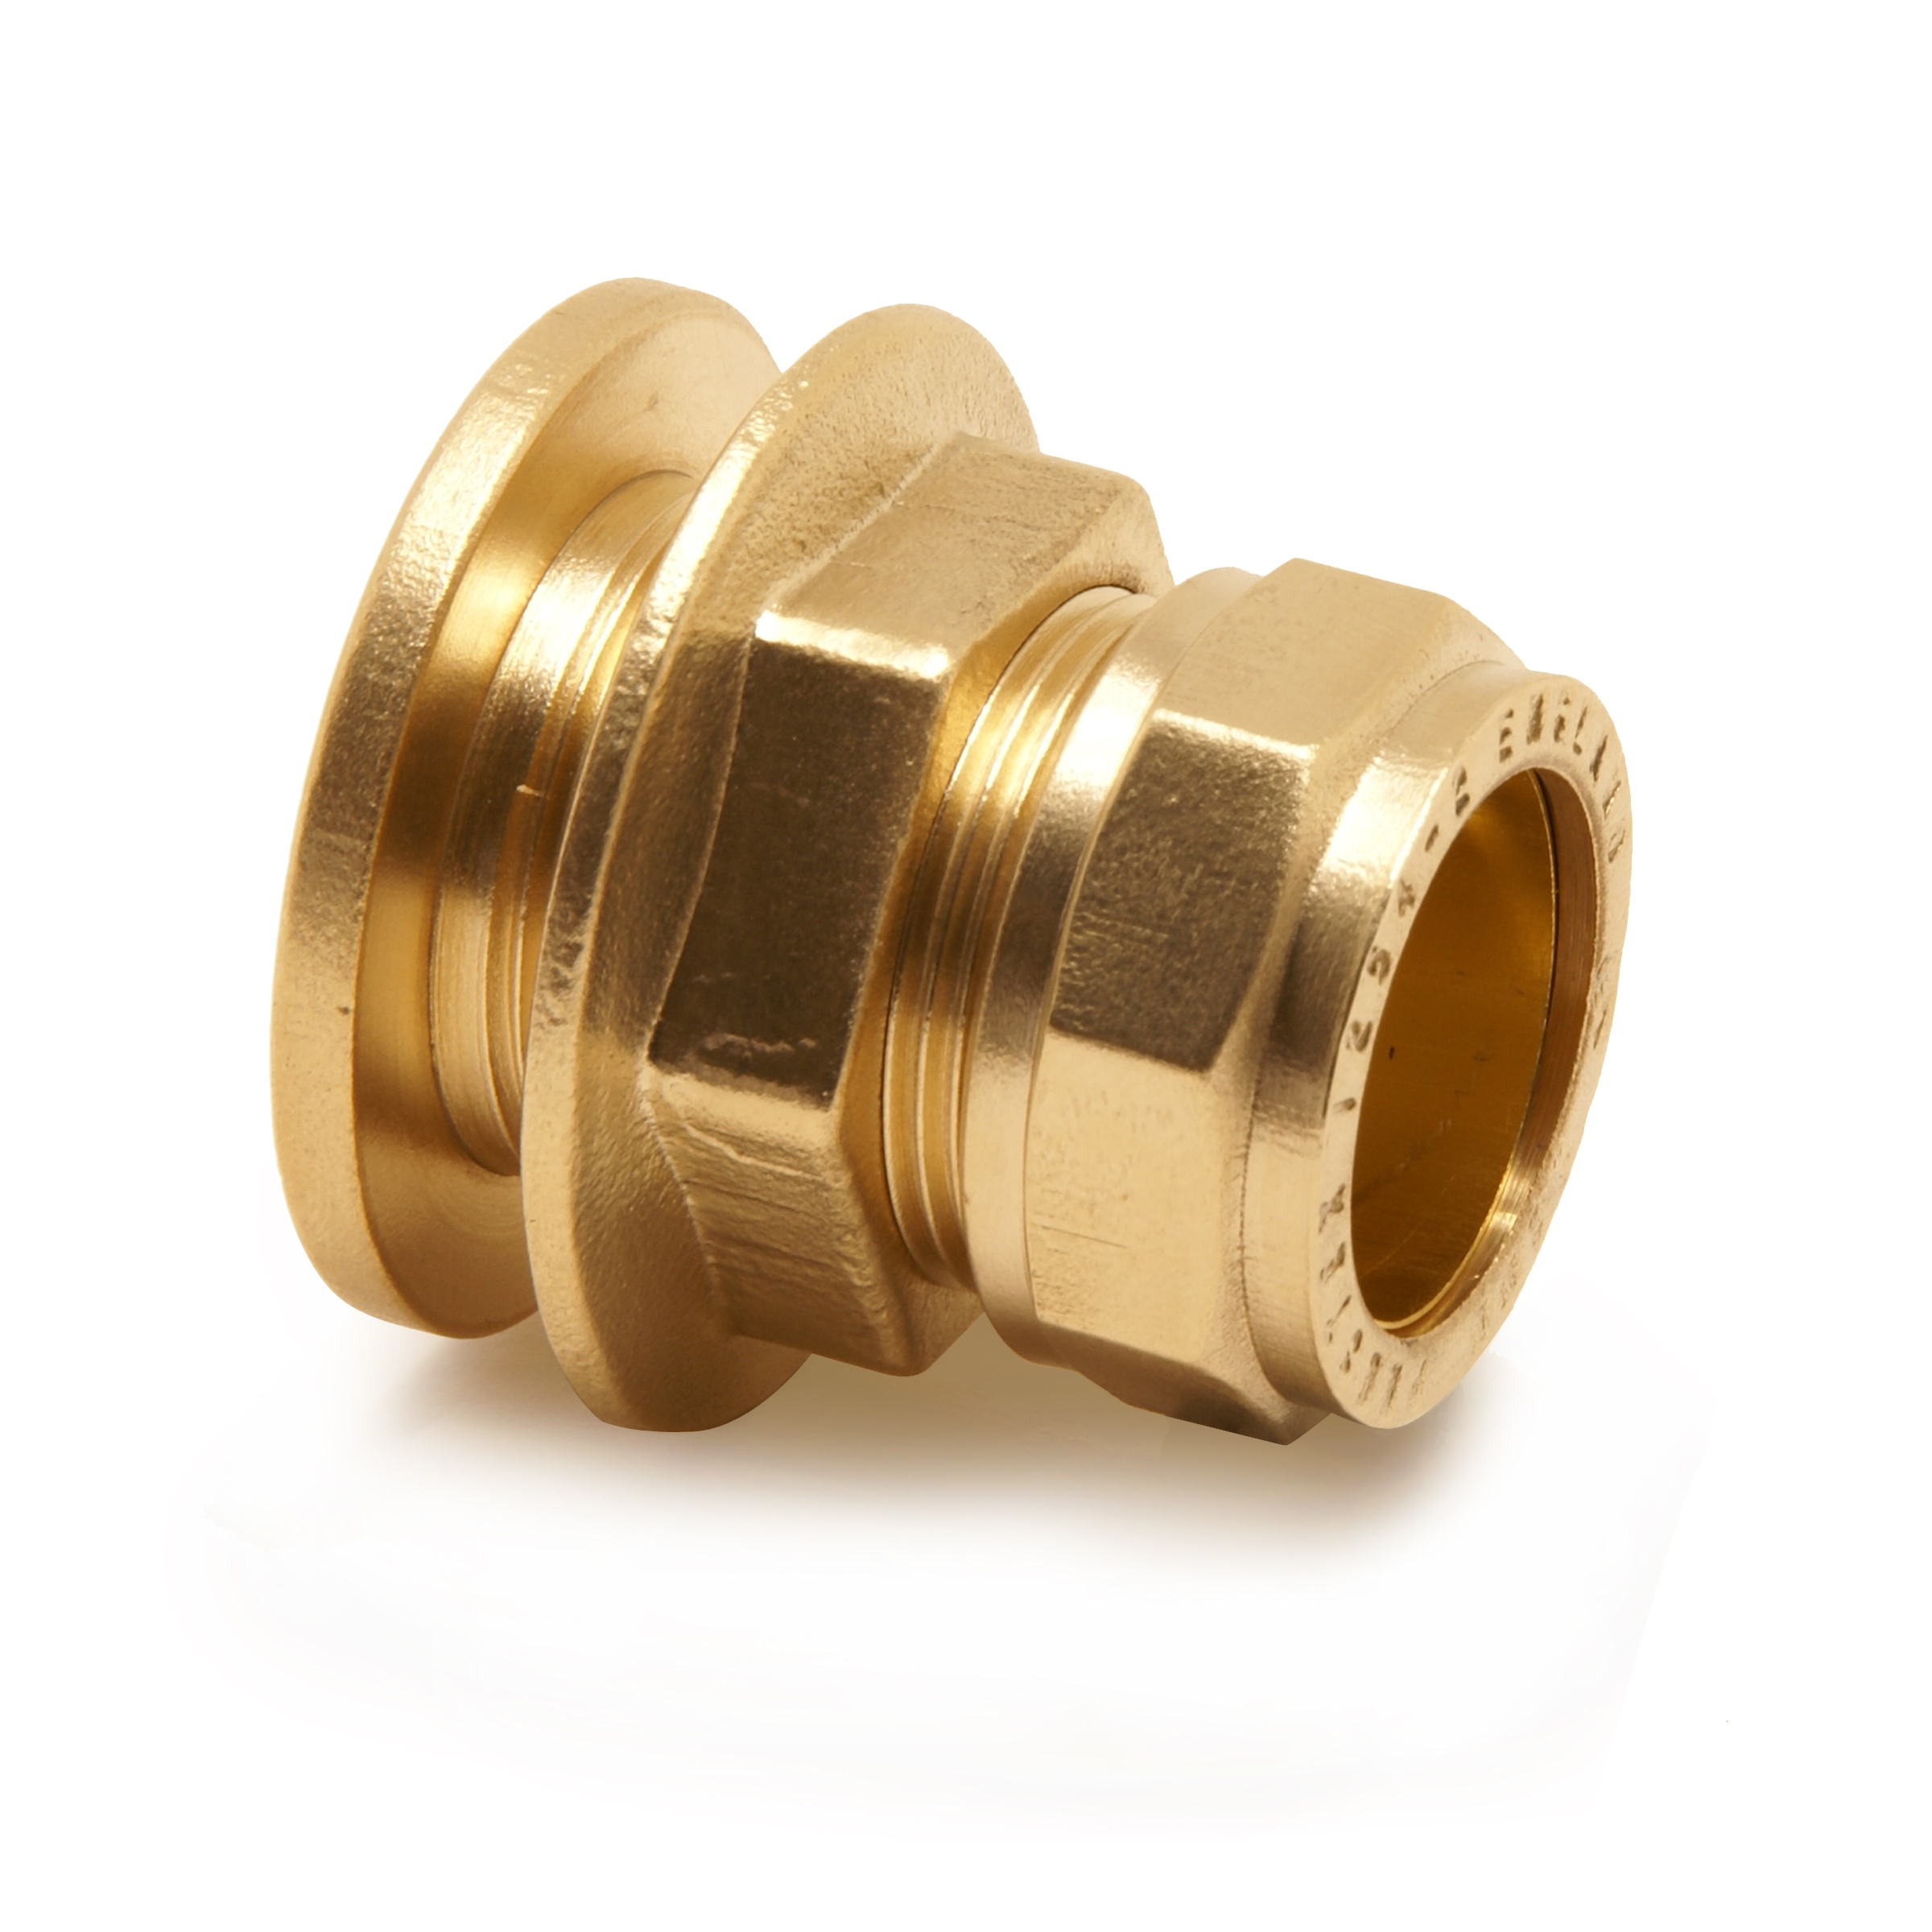 BRASS Tee reduced end & Branch compression pipe fitting ...